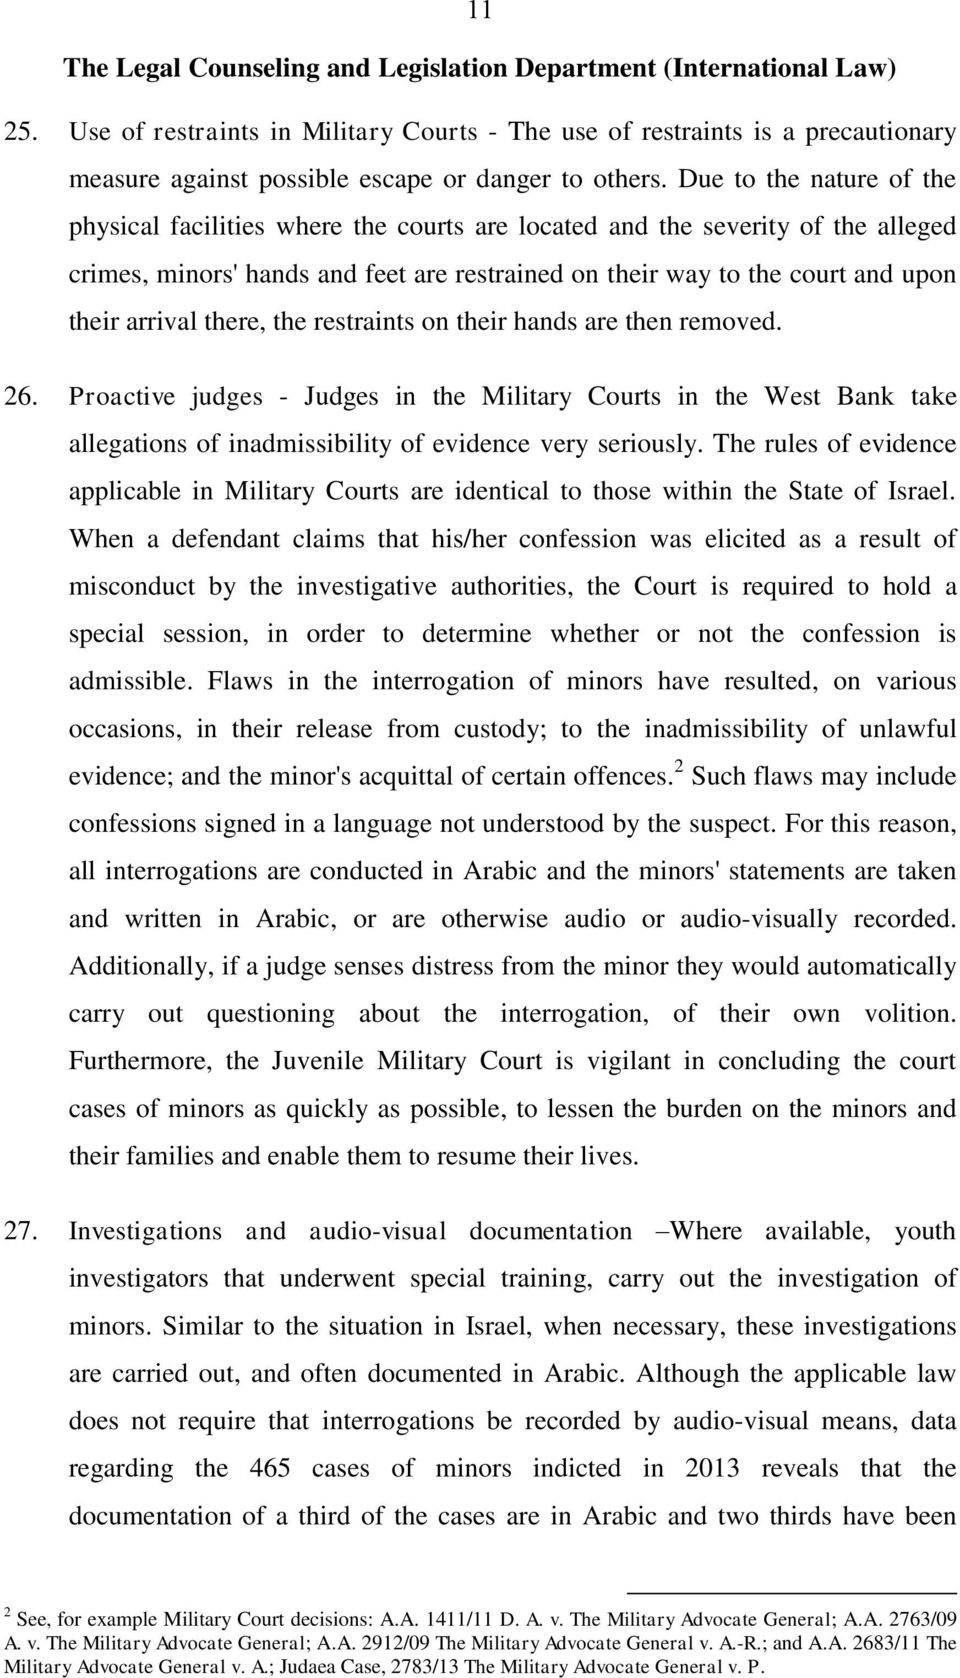 arrival there, the restraints on their hands are then removed. 26. Proactive judges - Judges in the Military Courts in the West Bank take allegations of inadmissibility of evidence very seriously.